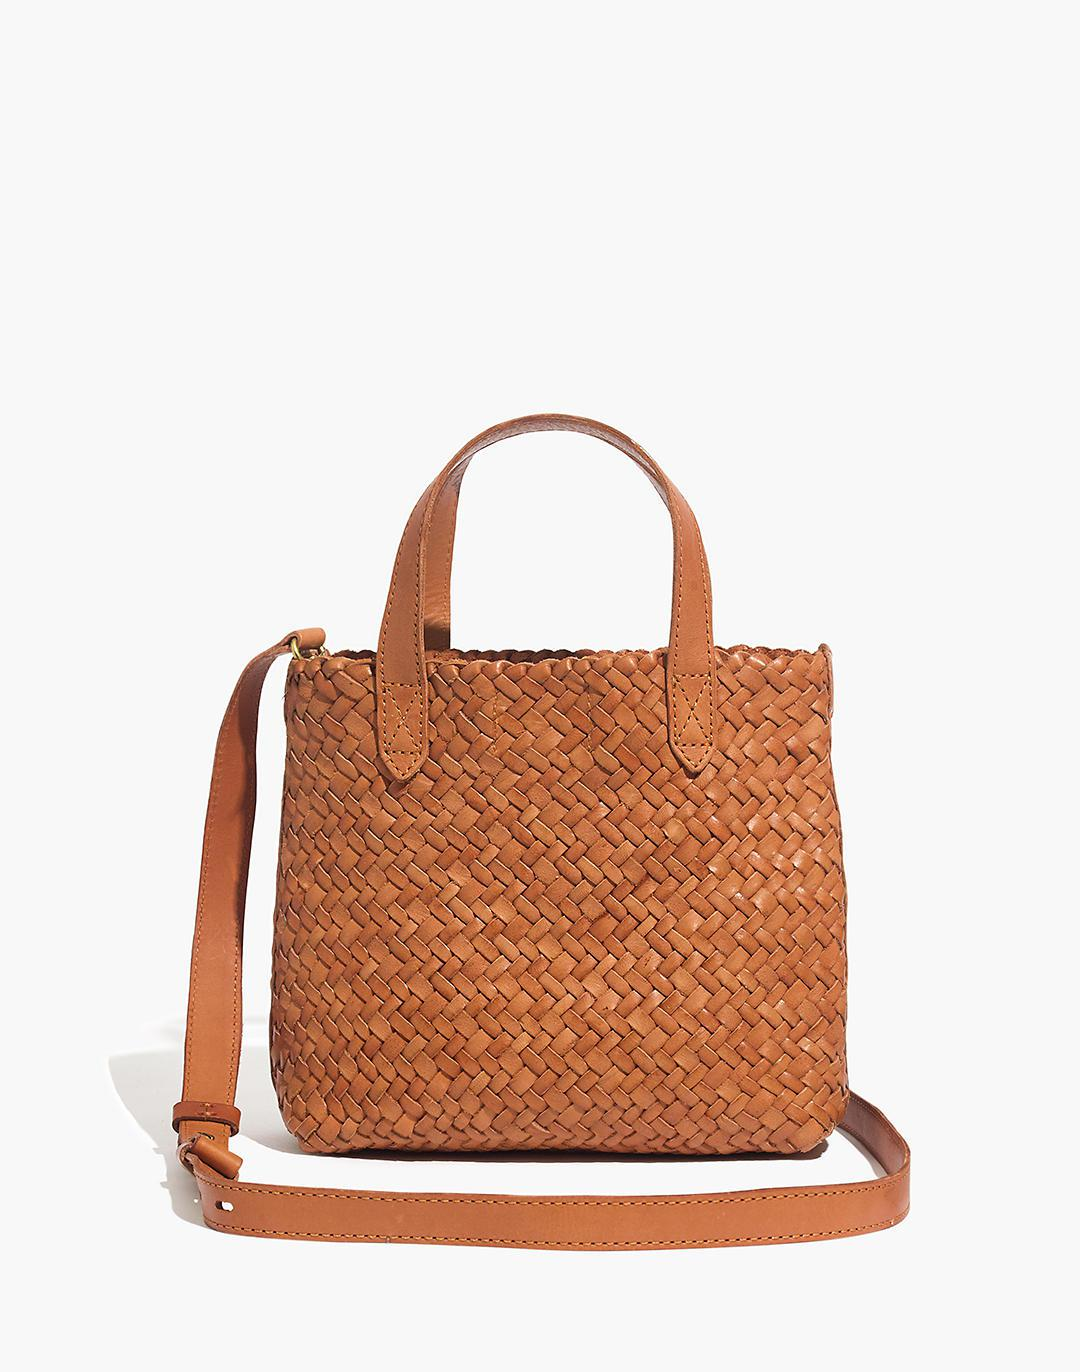 The Small Transport Crossbody: Woven Leather Edition